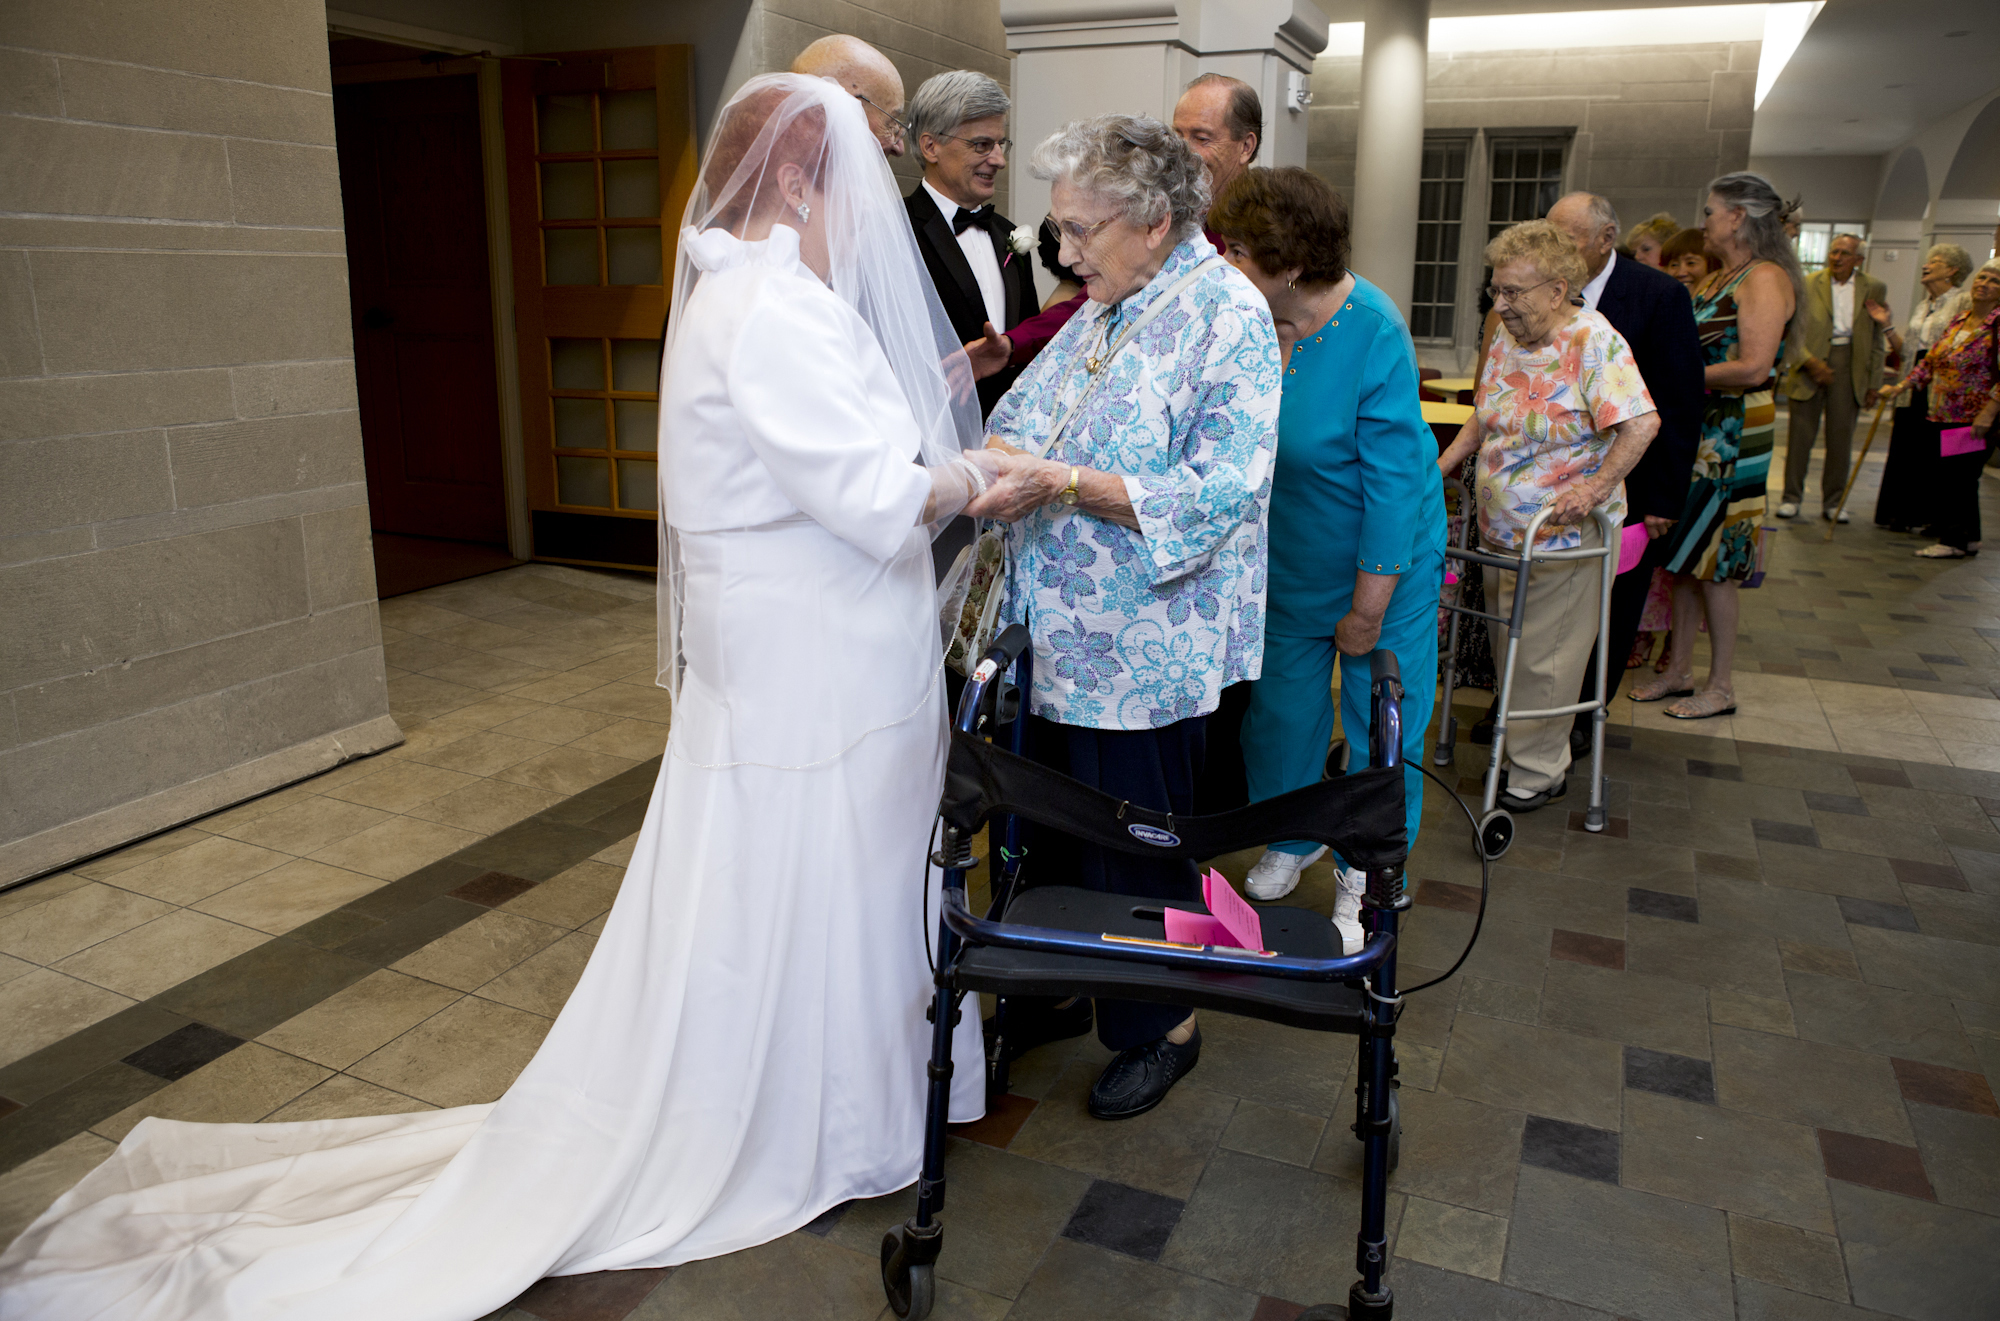 Friends and family line up to congratulate Joyce and Frank after their wedding at Sacred Heart Cathedral.